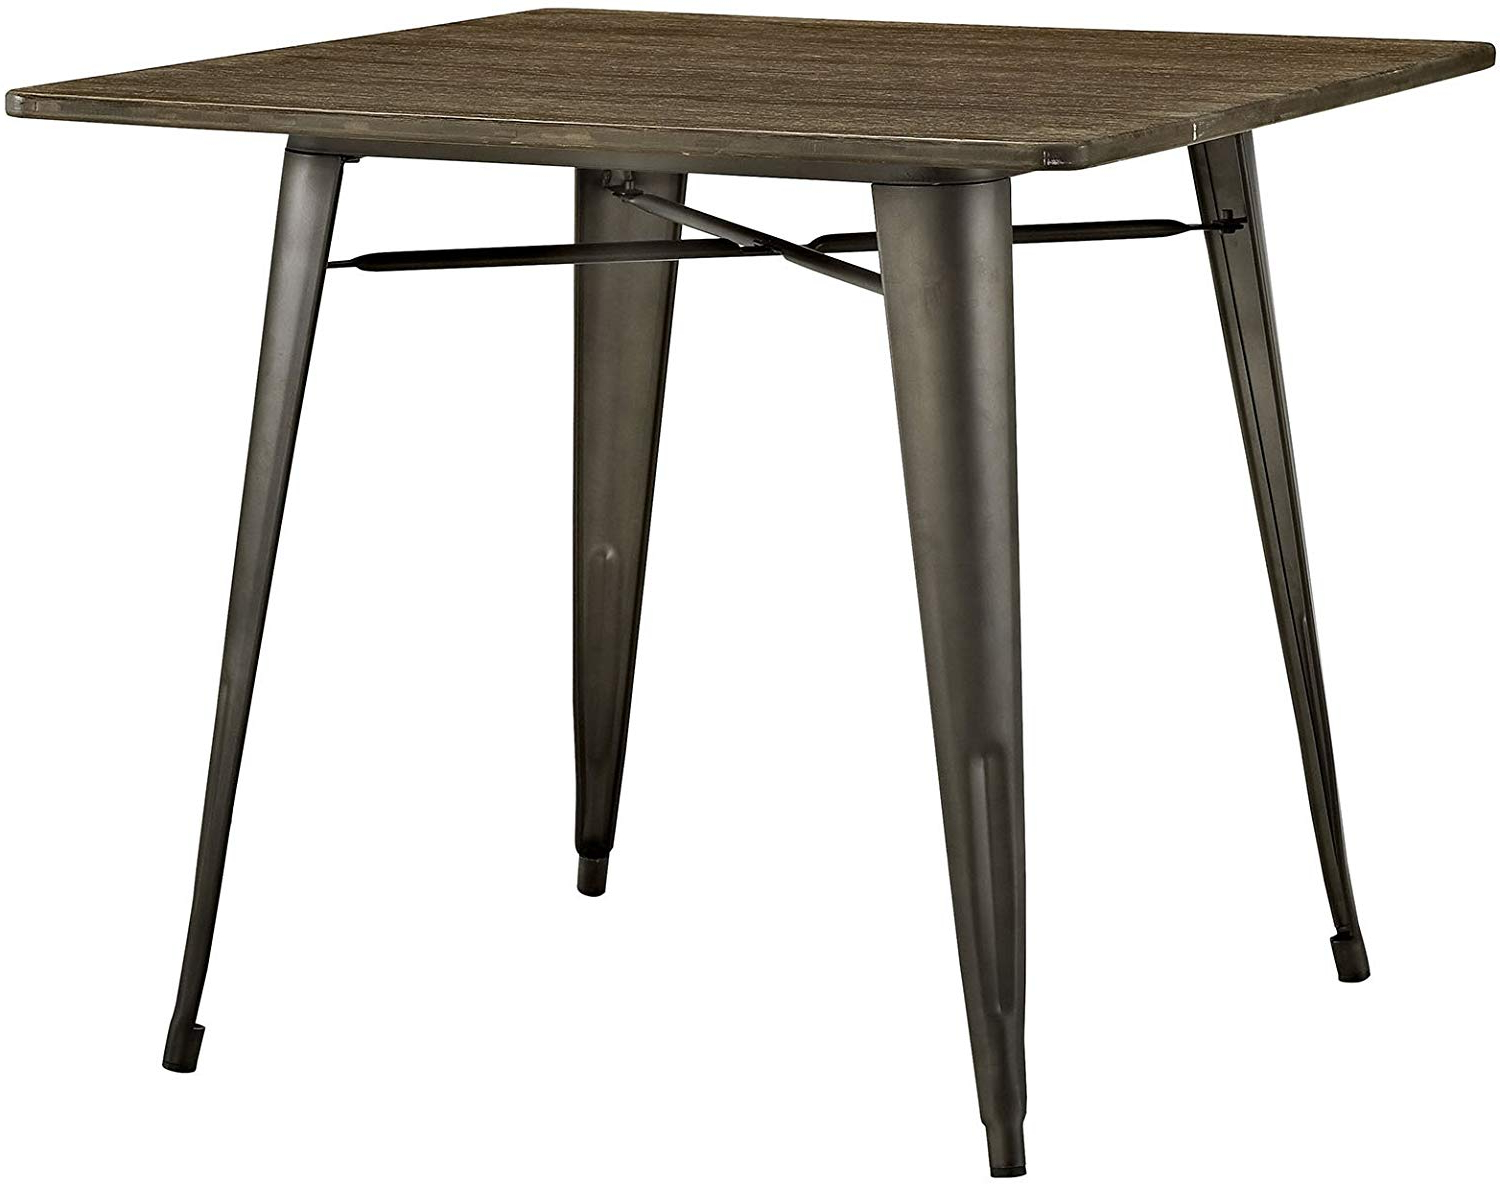 """Vintage Cream Frame And Espresso Bamboo Dining Tables Within Most Recent Lexmod Mo Eei 2036 Brn Alacrity Rustic Modern Farmhouse Wood Square With  Steel Legs, 36"""", Brown (View 24 of 25)"""